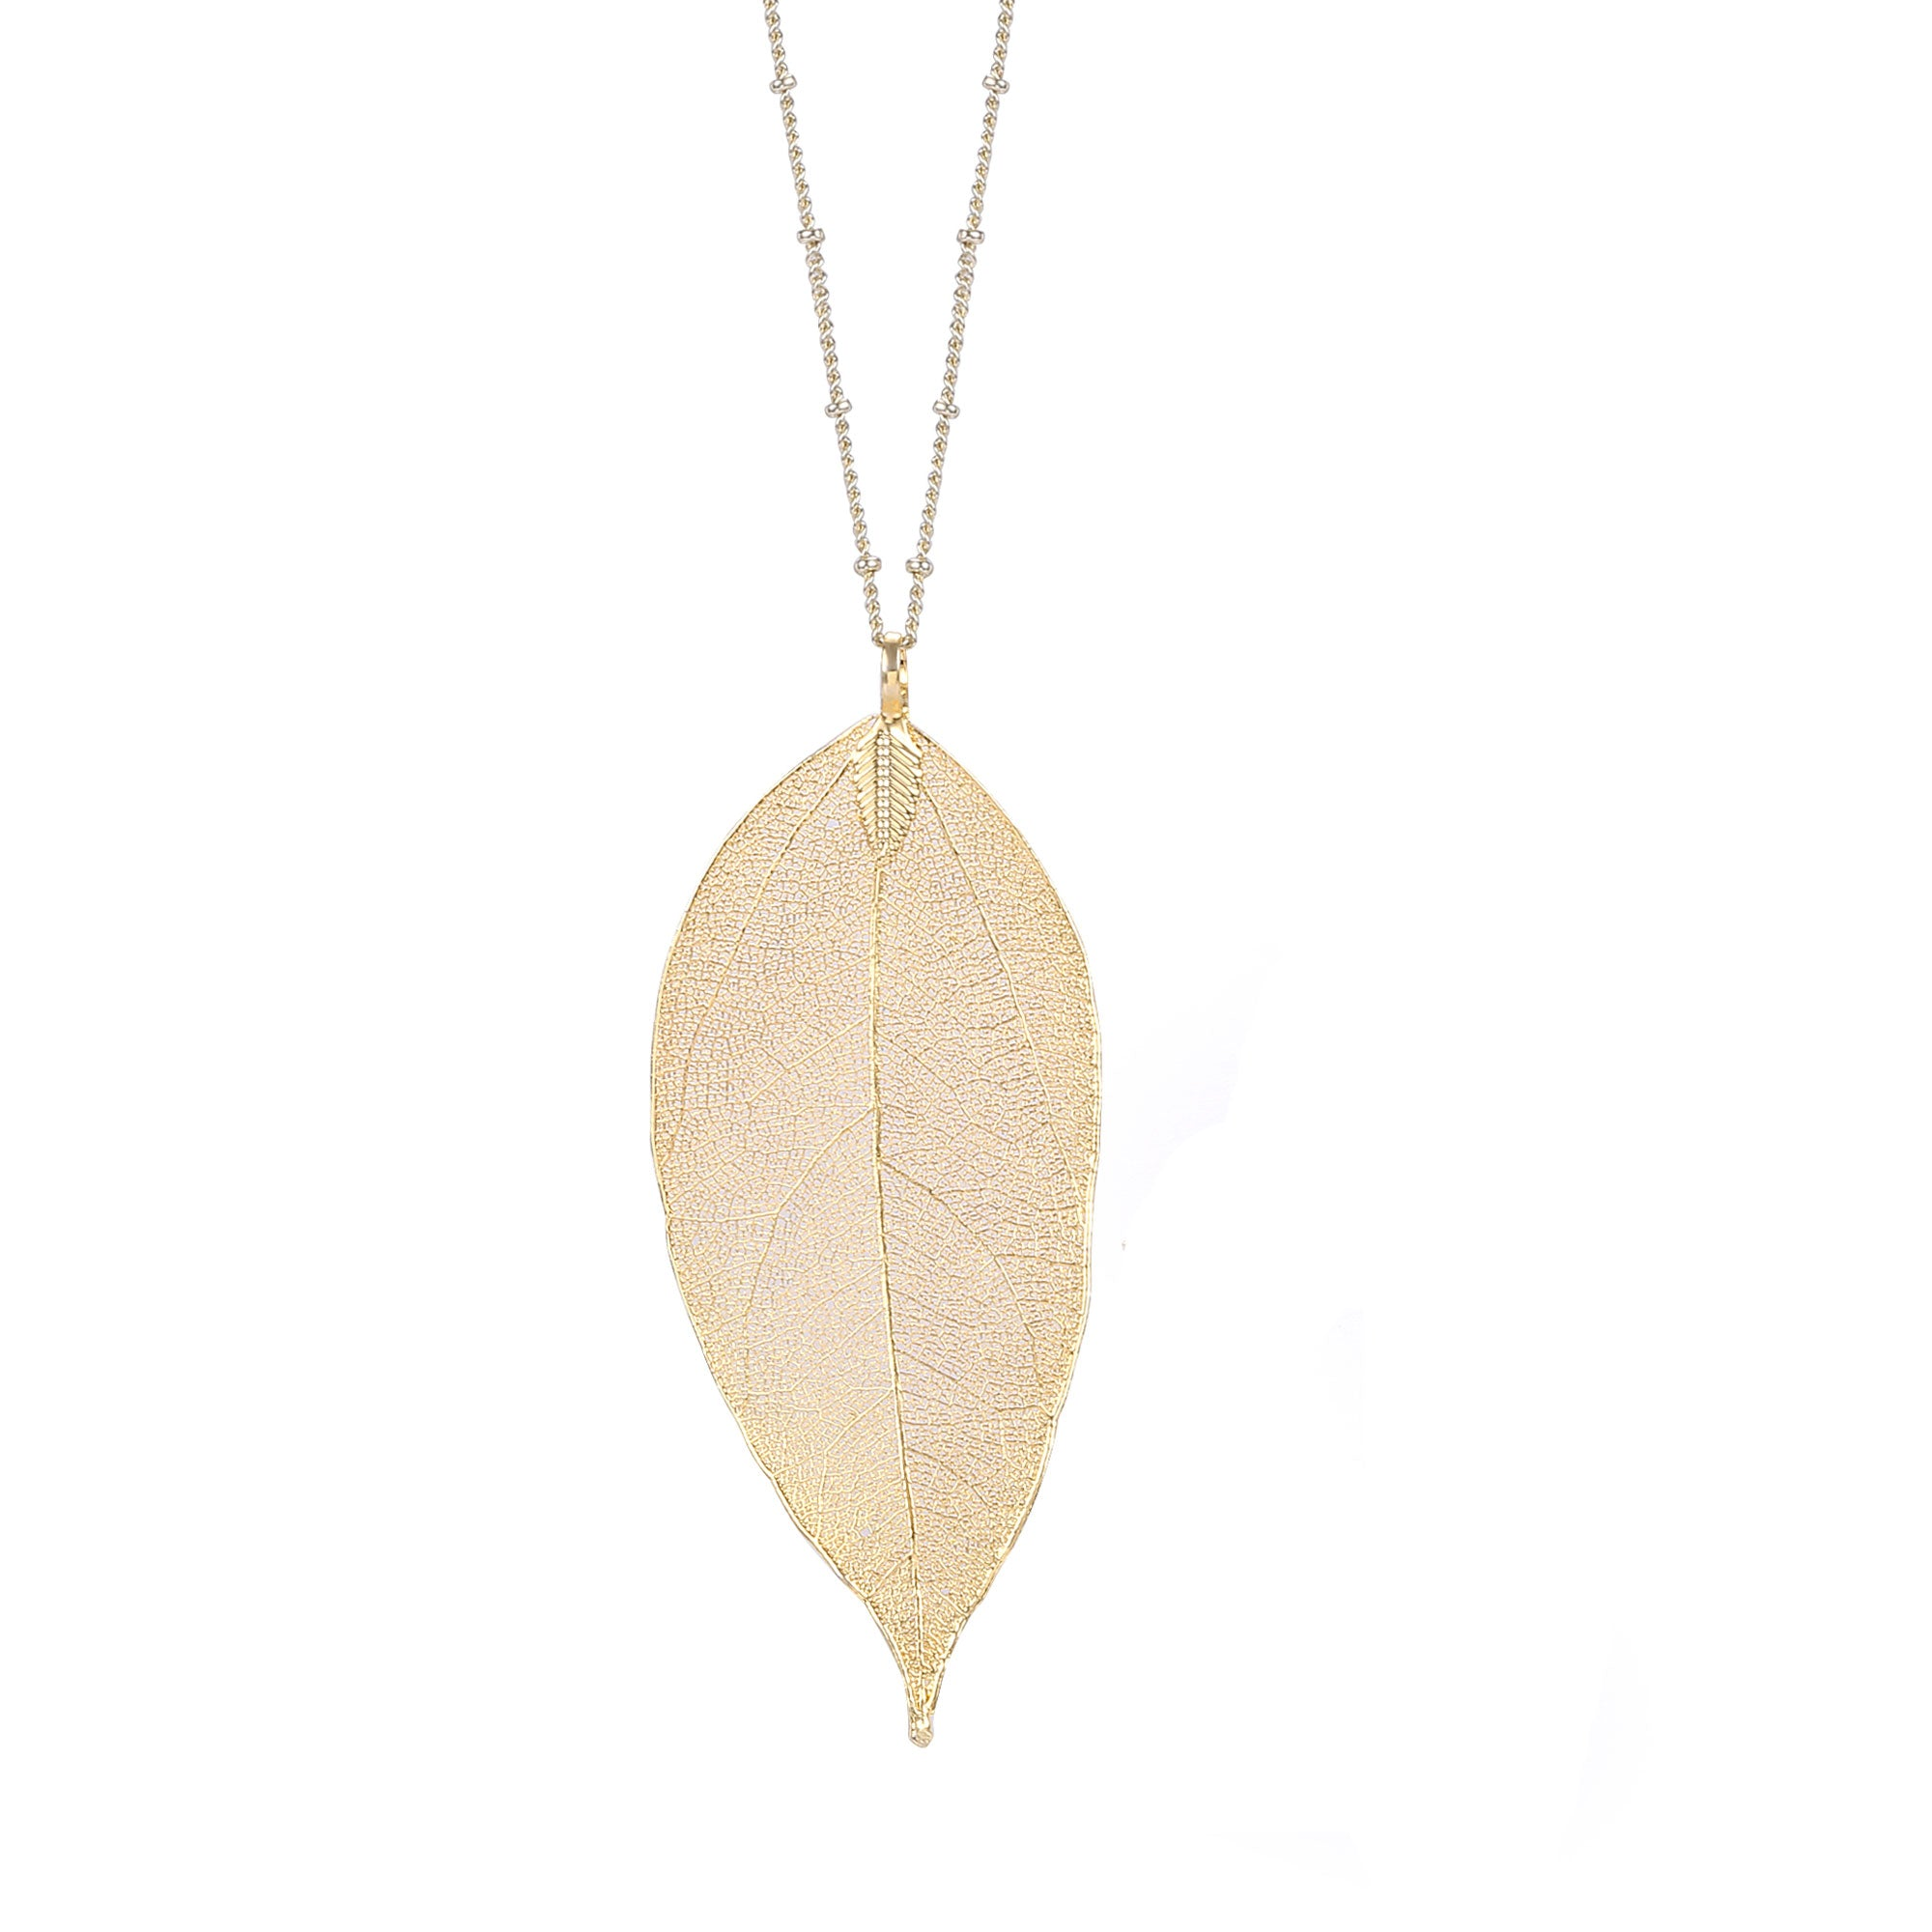 Natural Filigree Leaf Long Necklace, 14K Gold